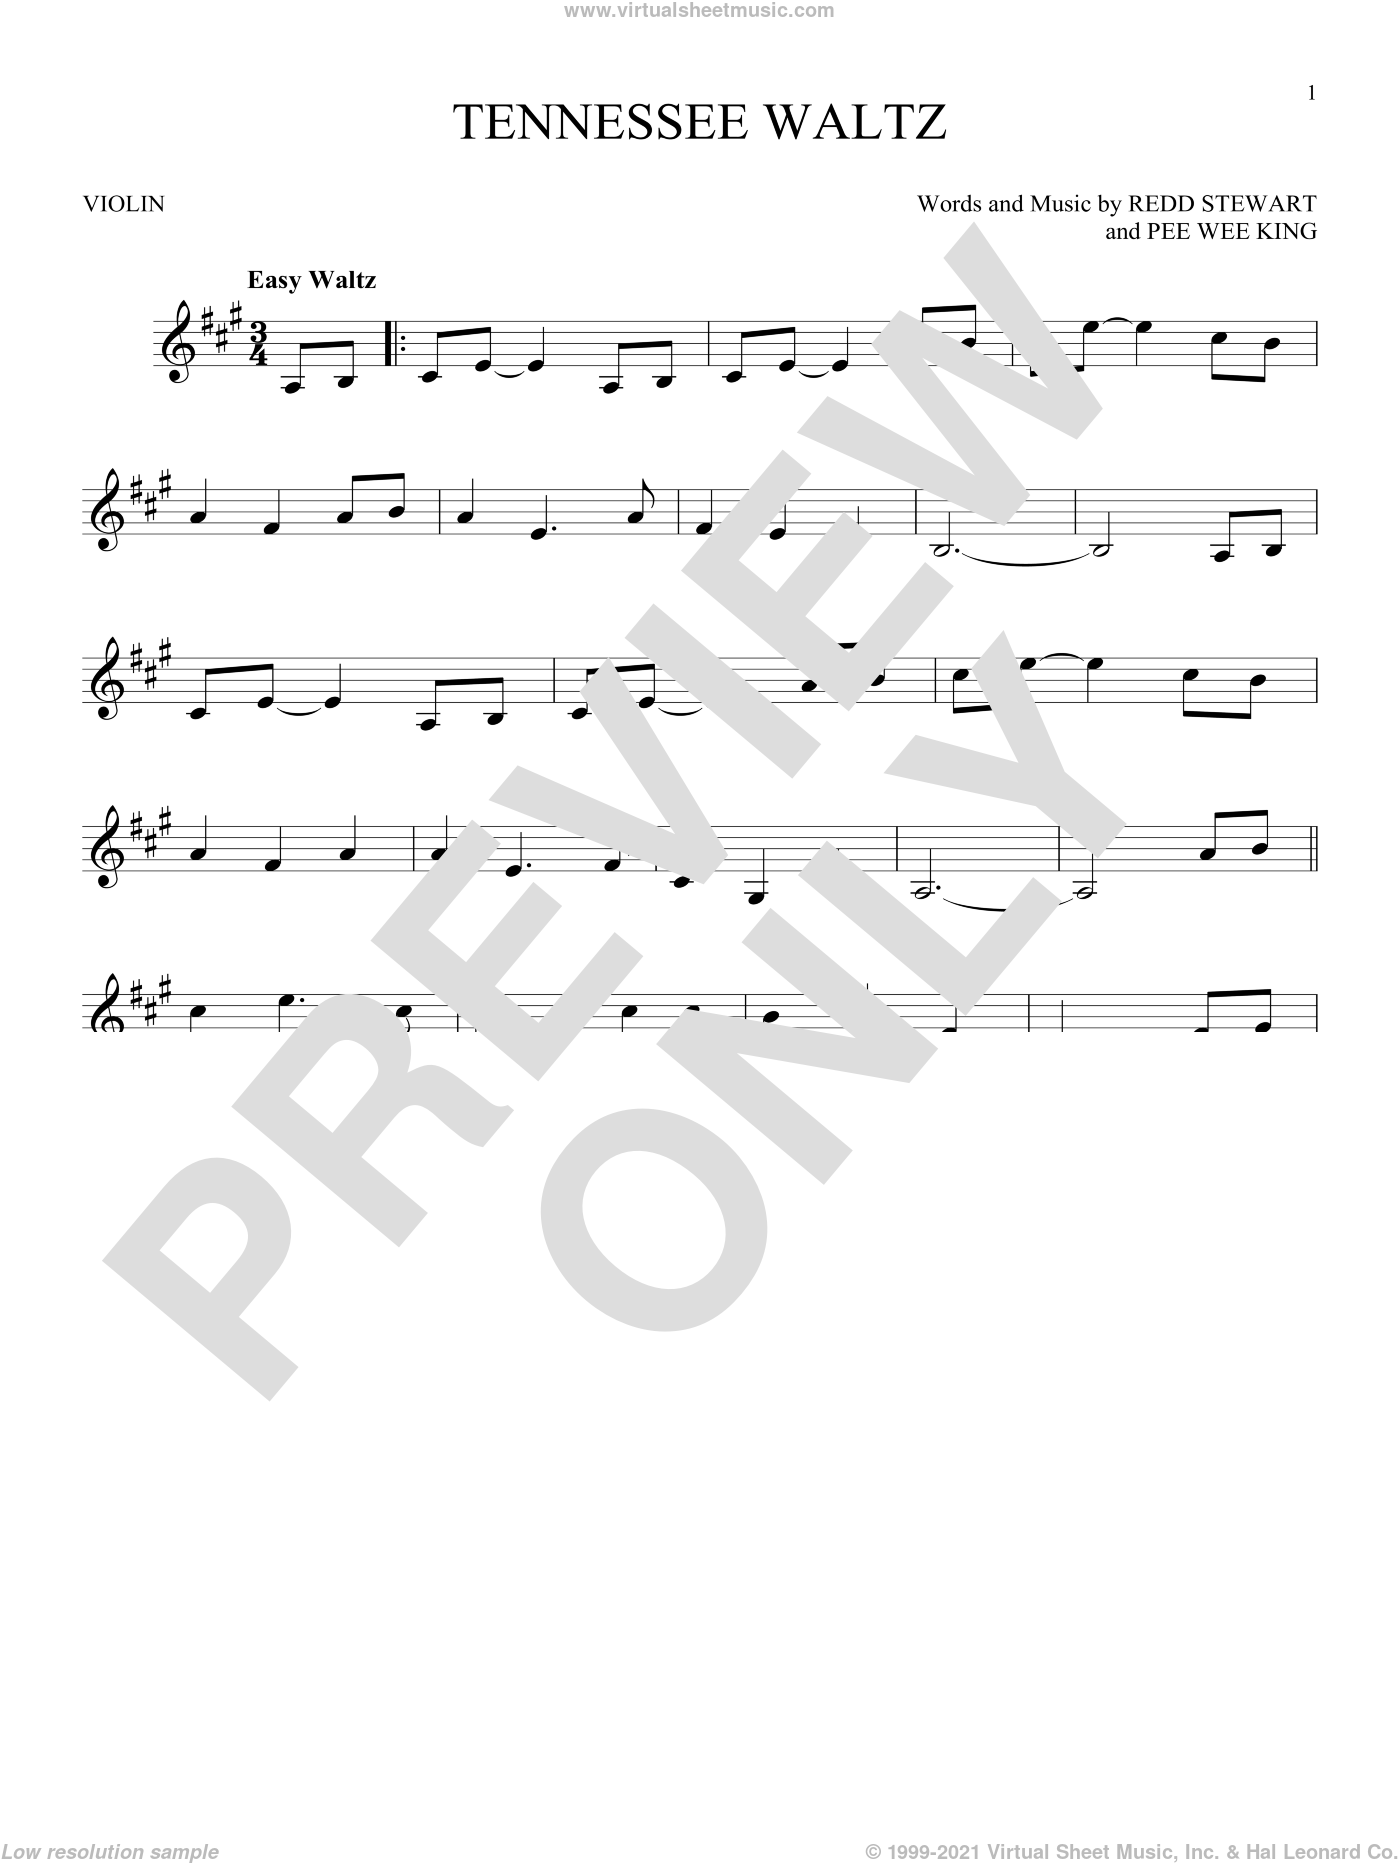 Tennessee Waltz sheet music for violin solo by Pee Wee King, Patti Page, Patty Page and Redd Stewart, intermediate skill level